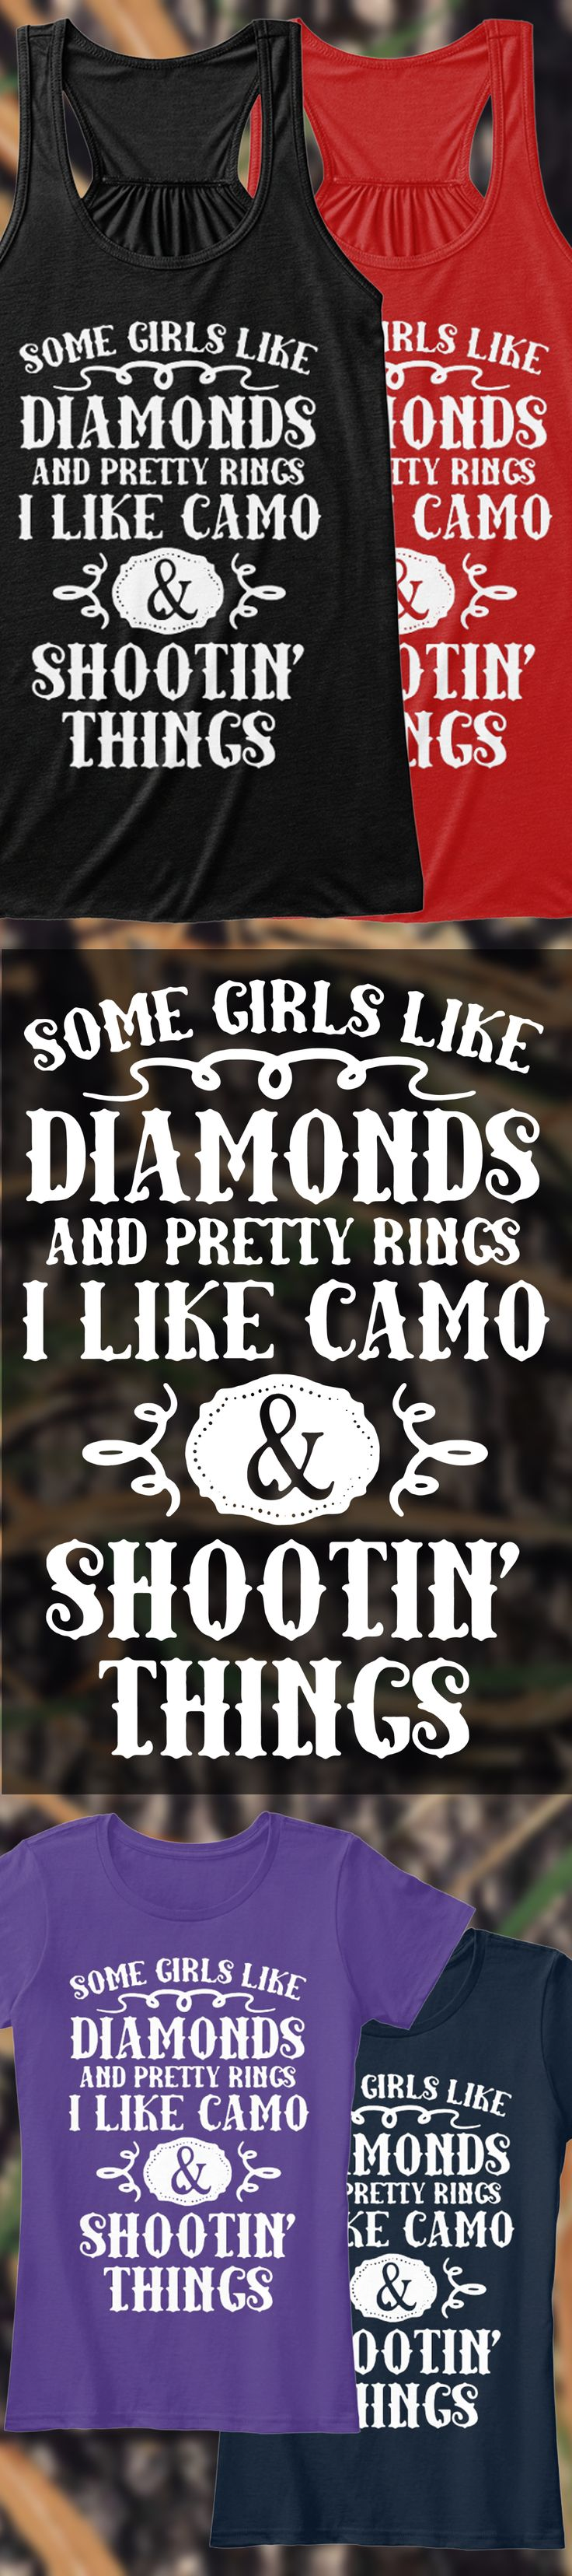 Real Girls Go Hunting - Limited Edition. Grab yours or gift it to a friend. You will both love it